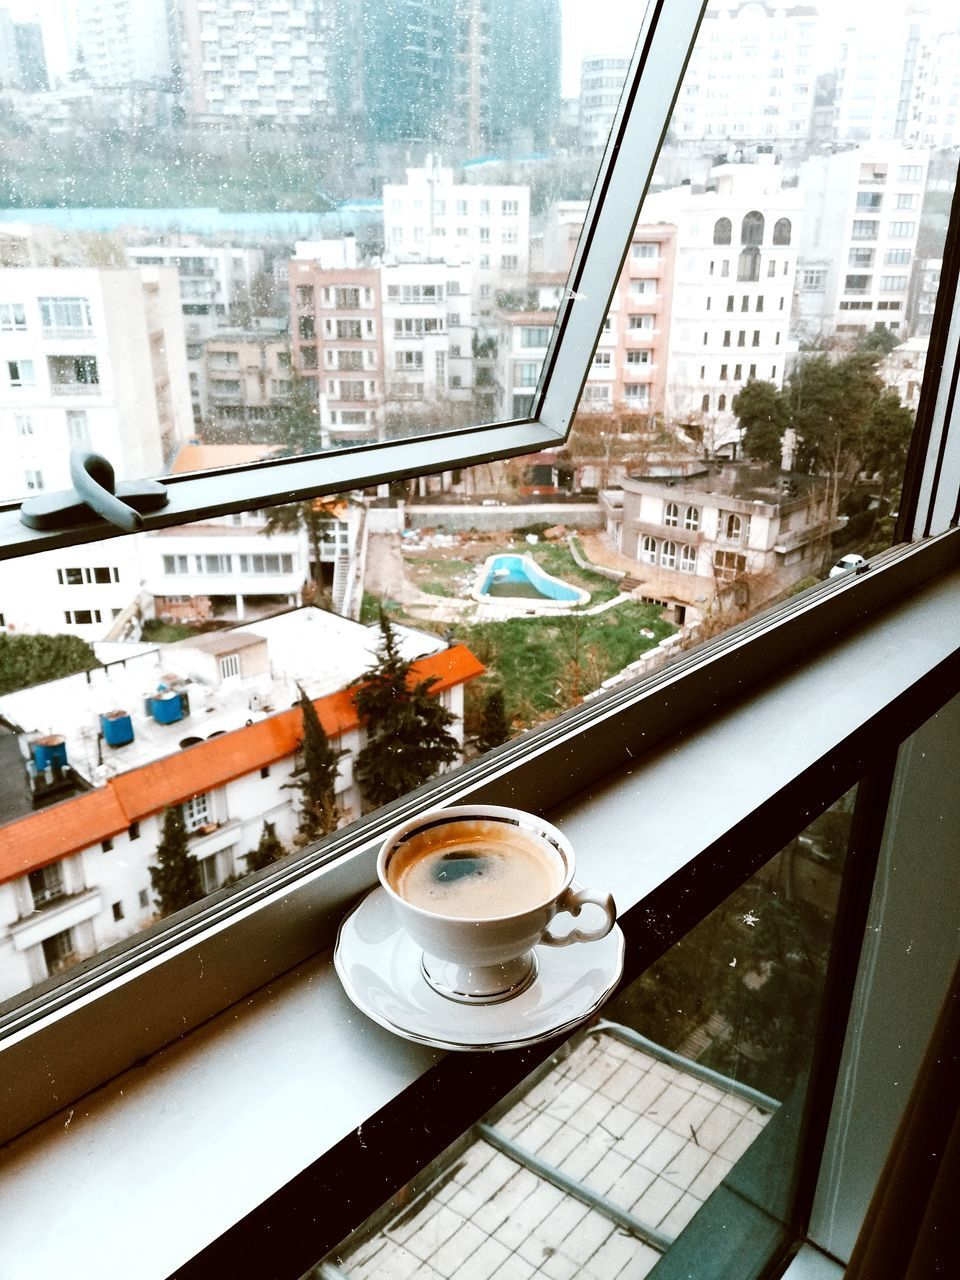 COFFEE AND BUILDINGS SEEN THROUGH WINDOW